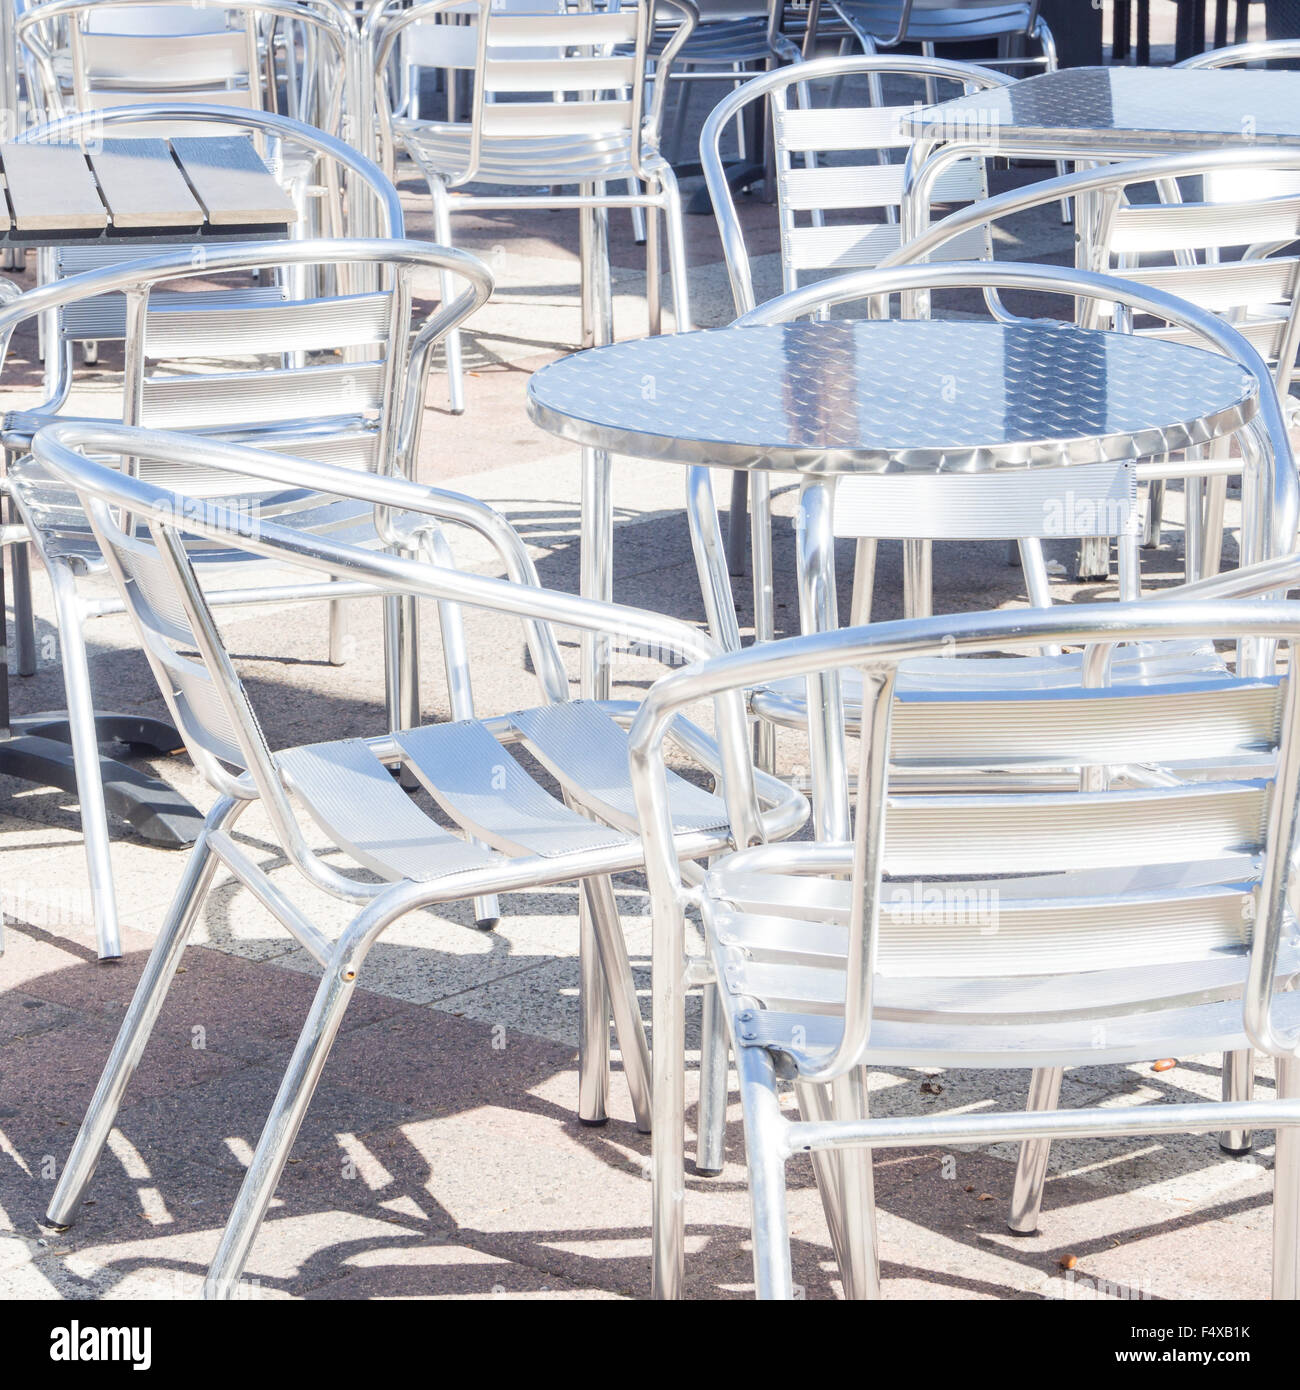 seats metallic reflection. several tables and metal chairs empty - Stock Image